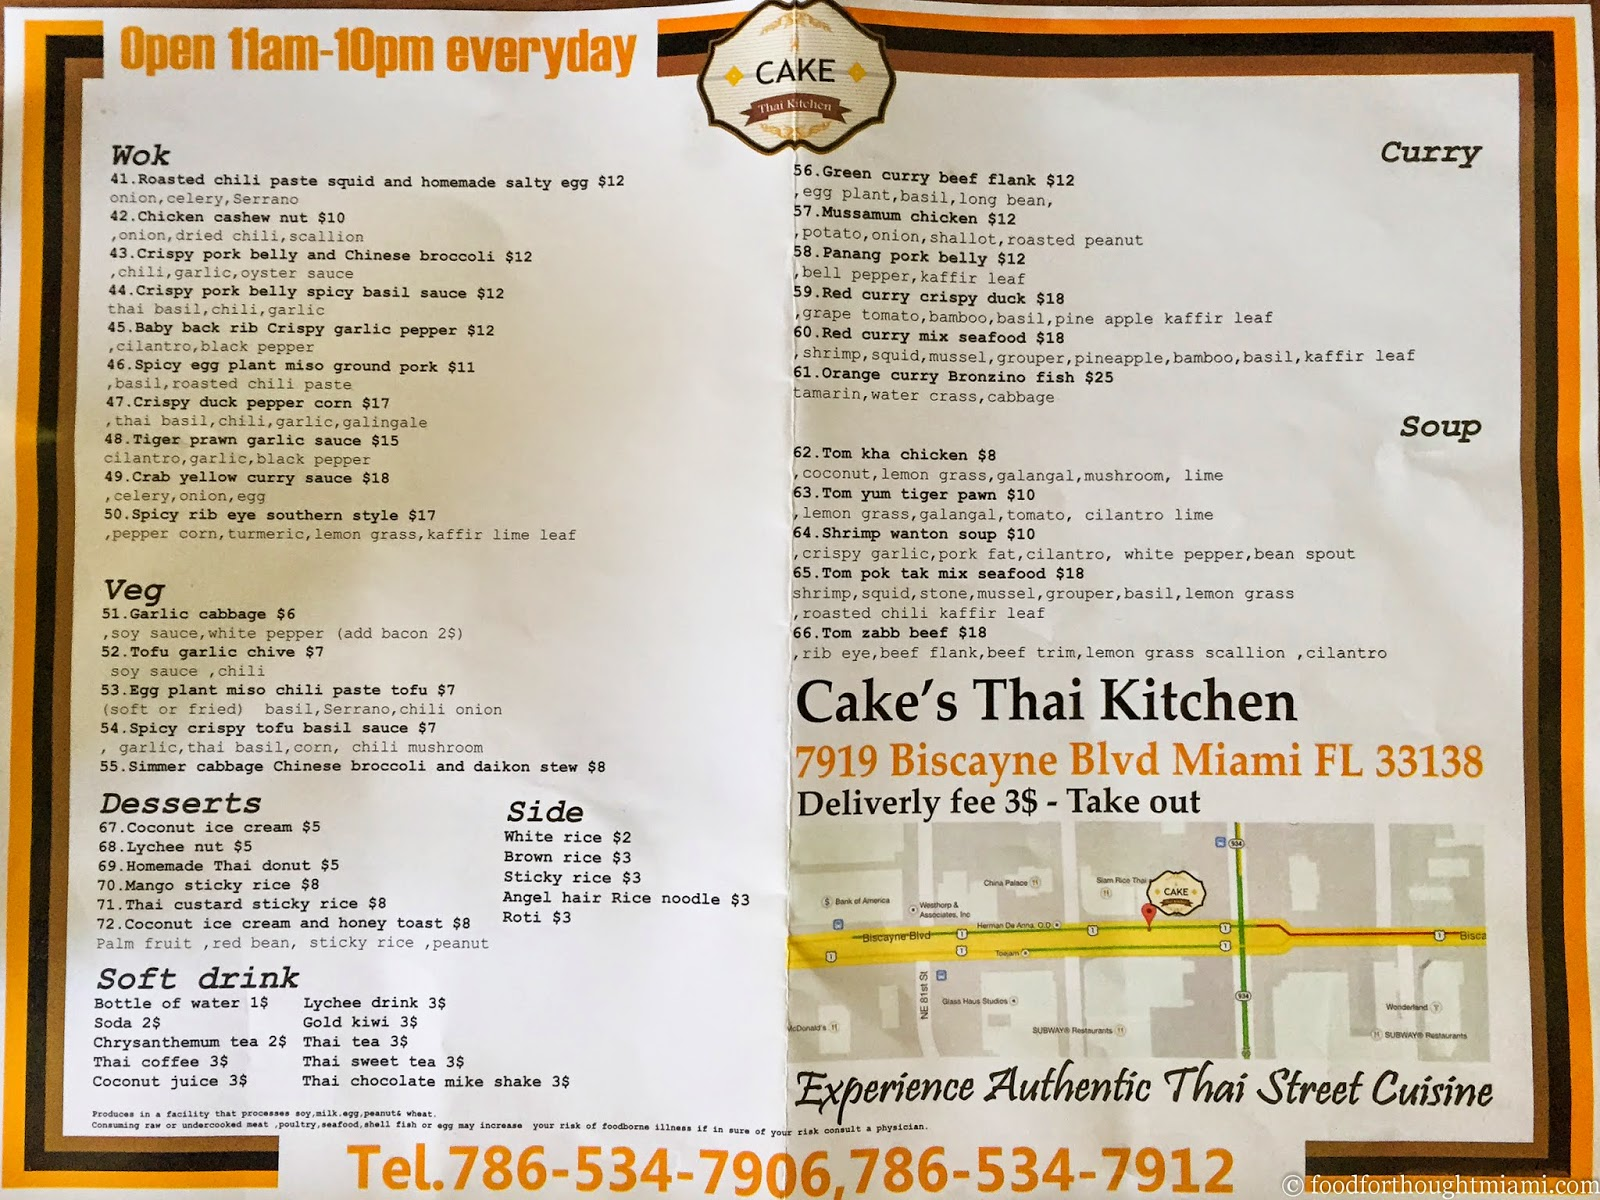 food for thought | a miami food blog: Cake Thai Kitchen - Miami